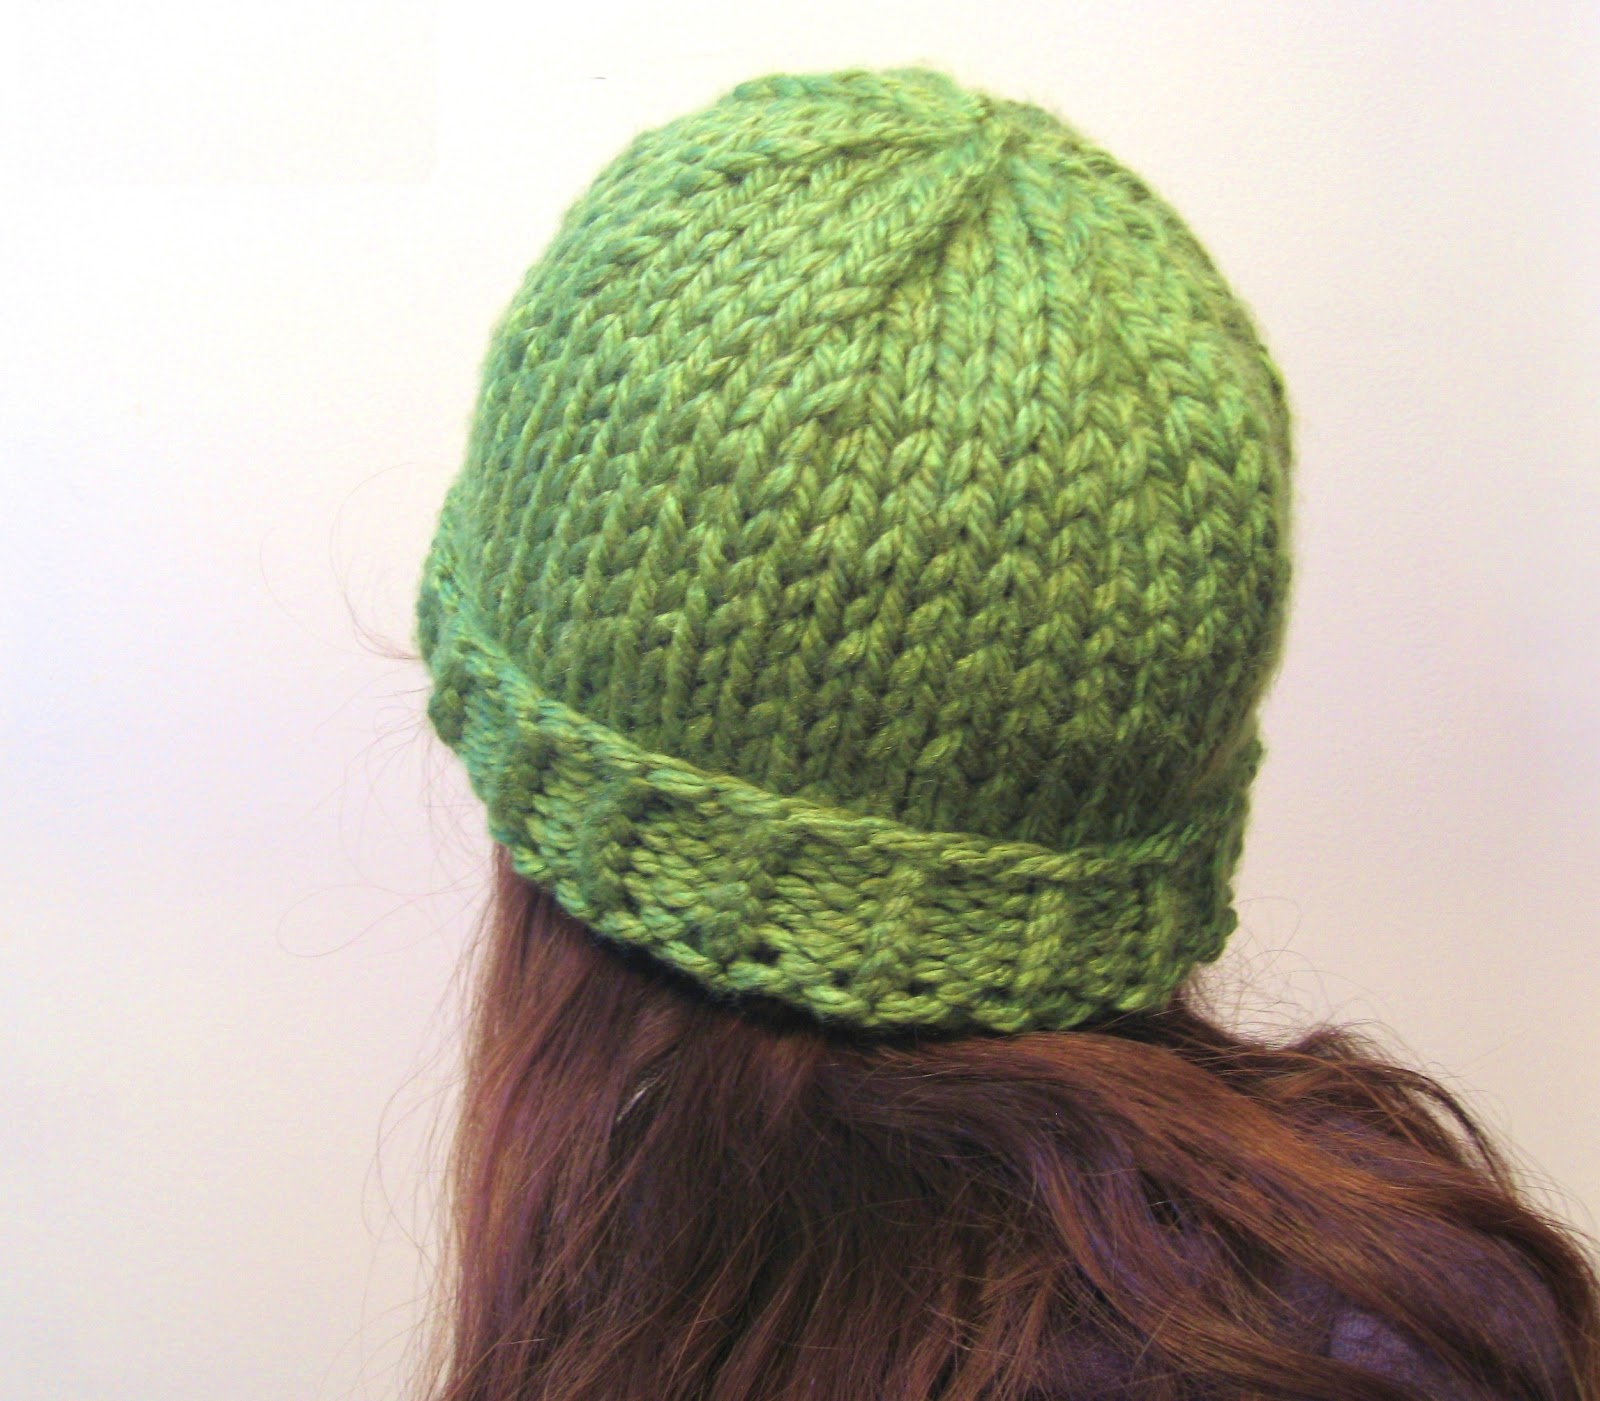 Knit Pattern Beanie Easy : megan E sass handknits: Free Knitting Pattern: Easy Chunky Knit Beanie Hat